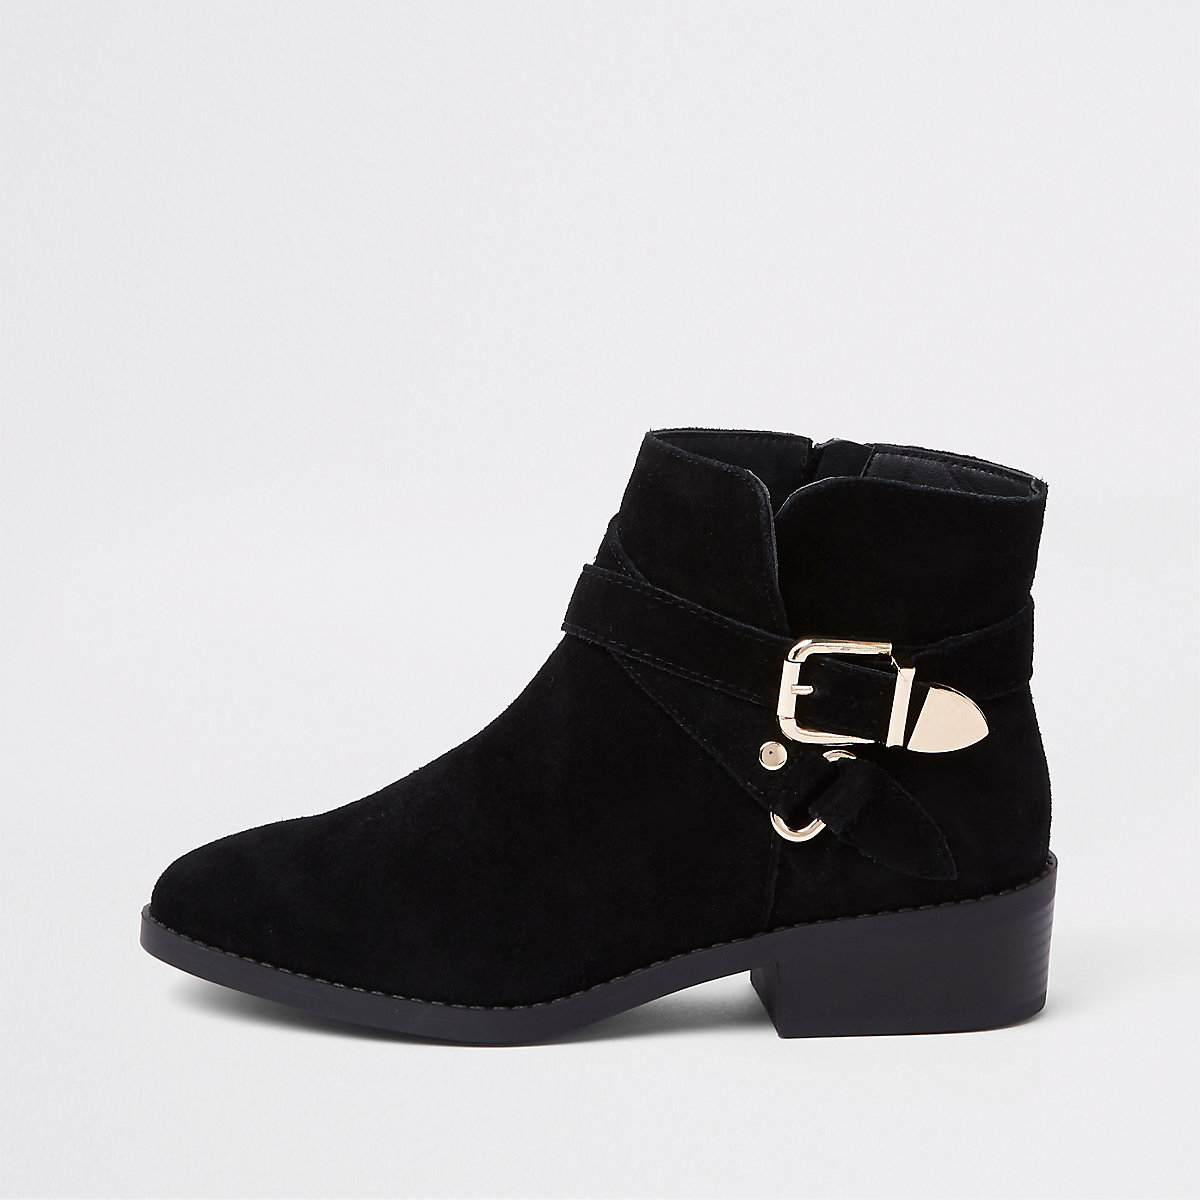 Black wide fit suede buckle ankle boots